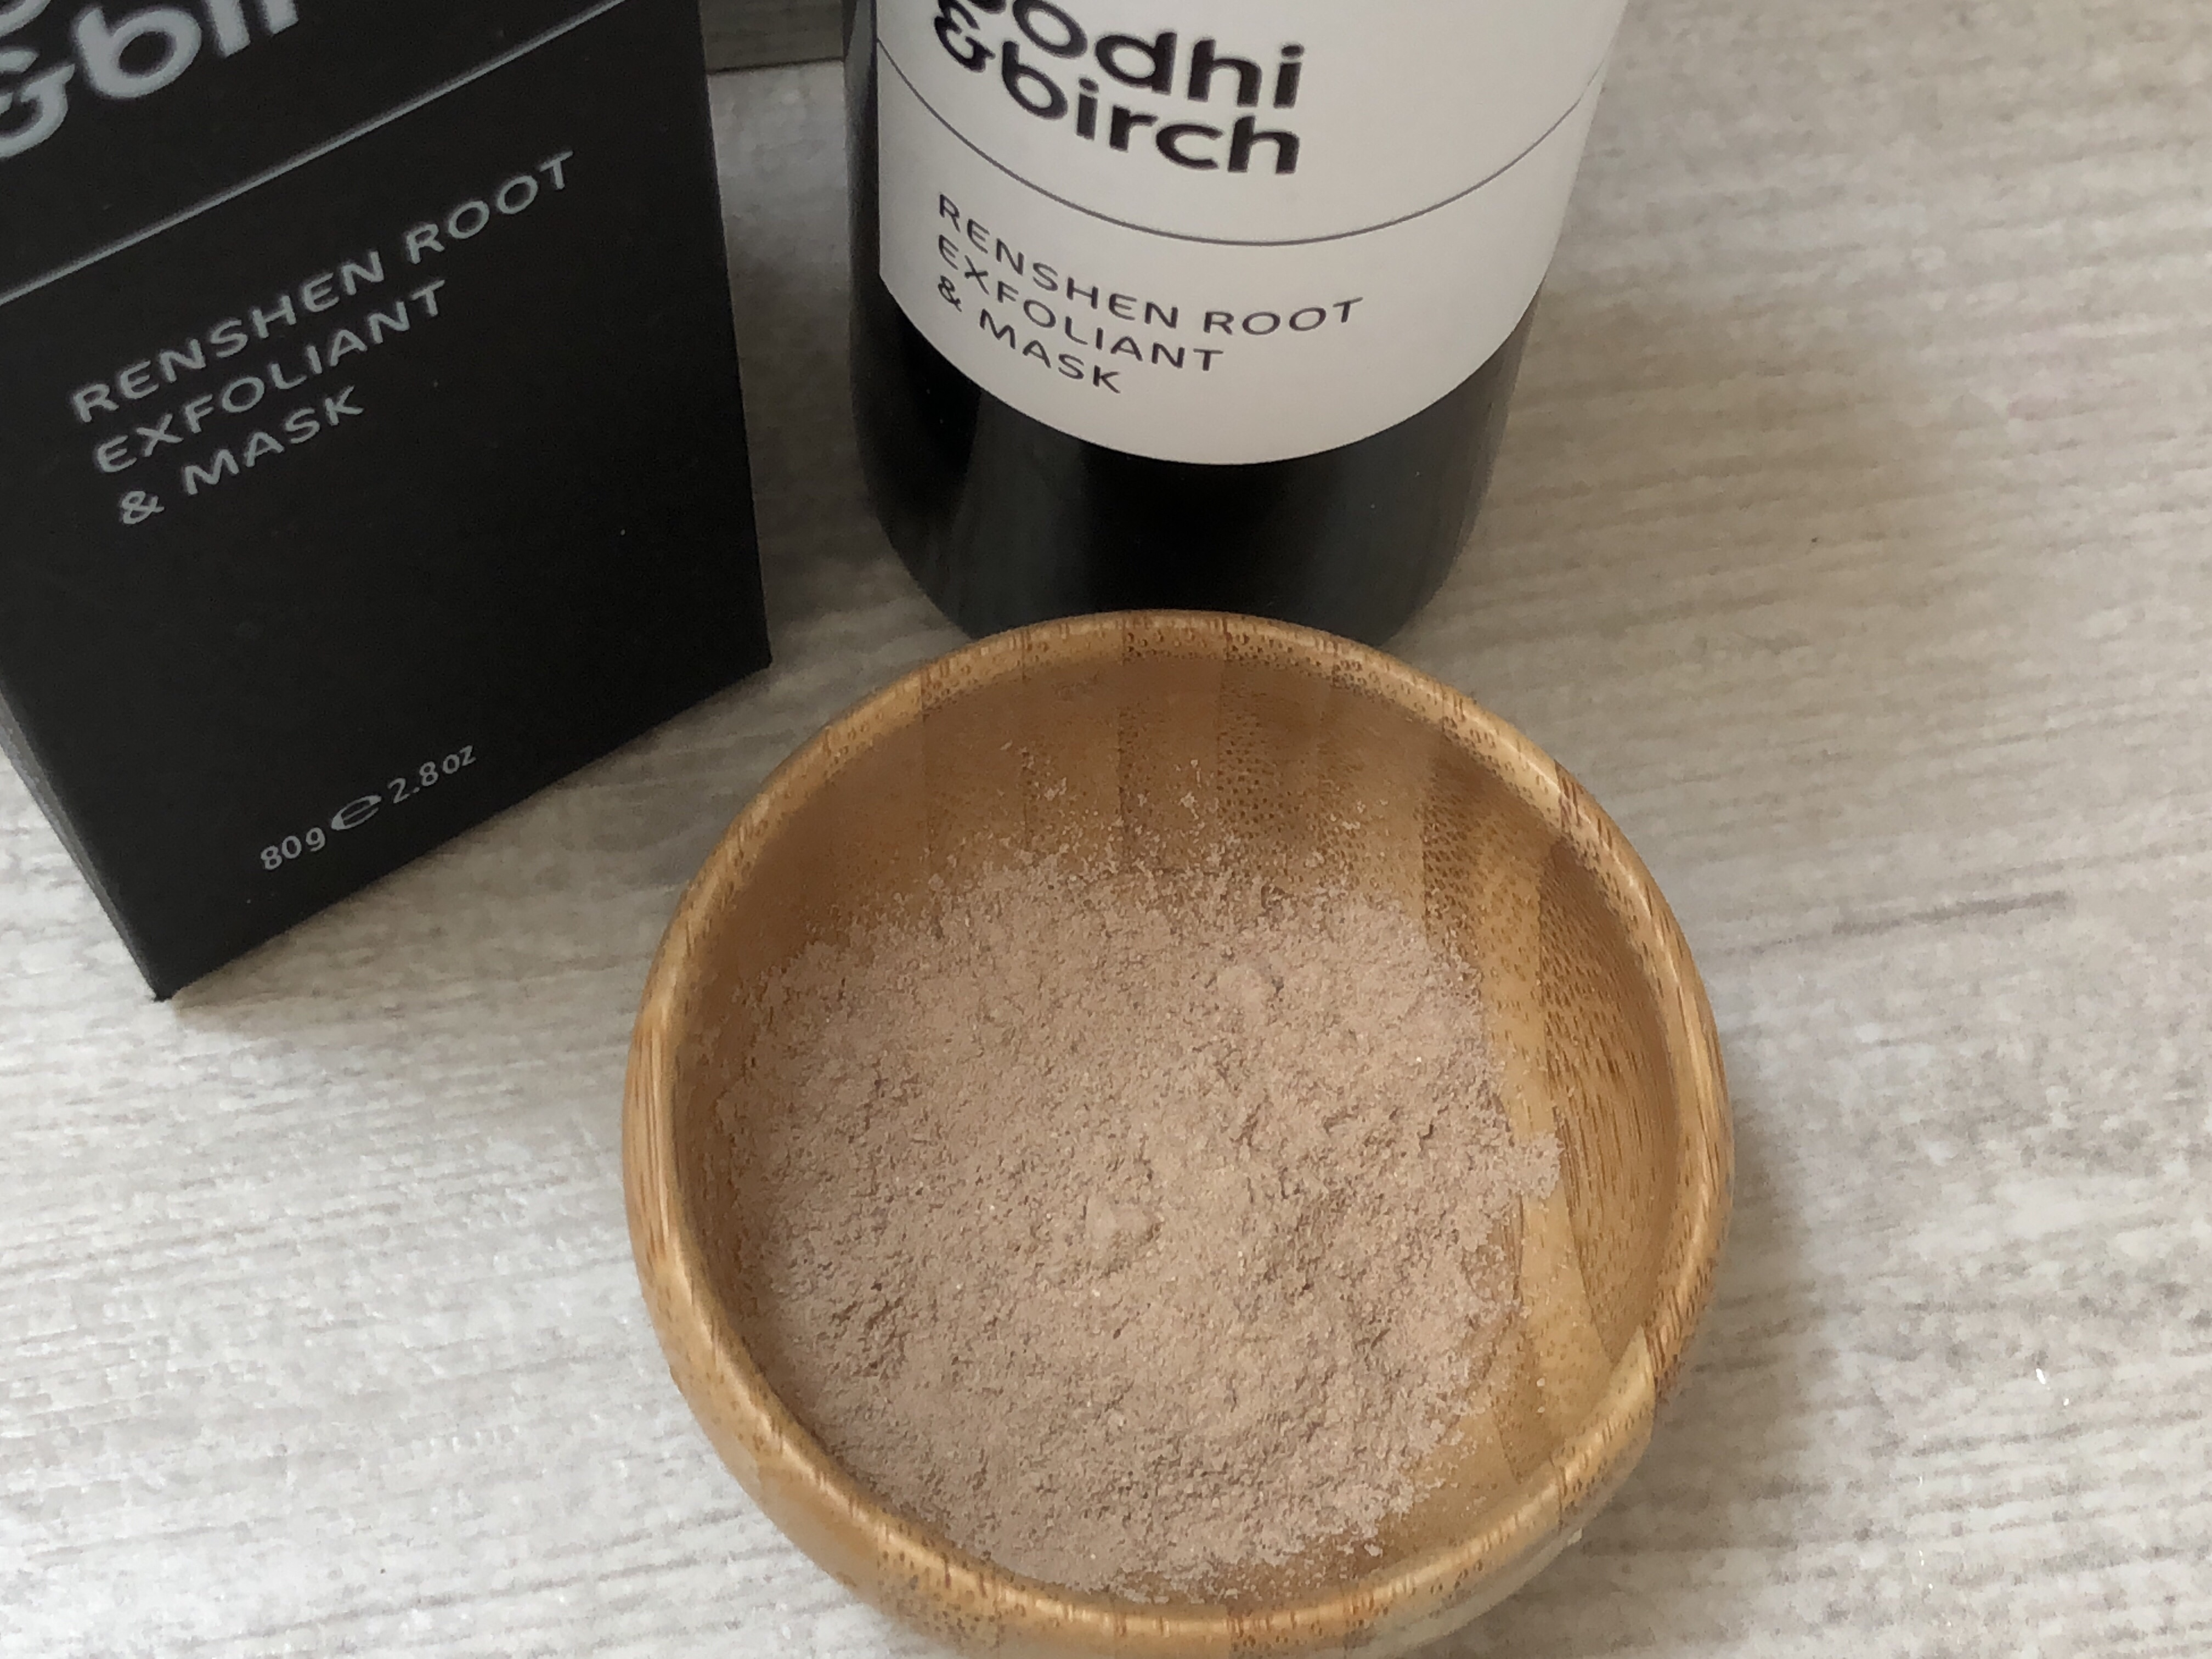 Bodhi & Birch Renshen root exfoliant & mask